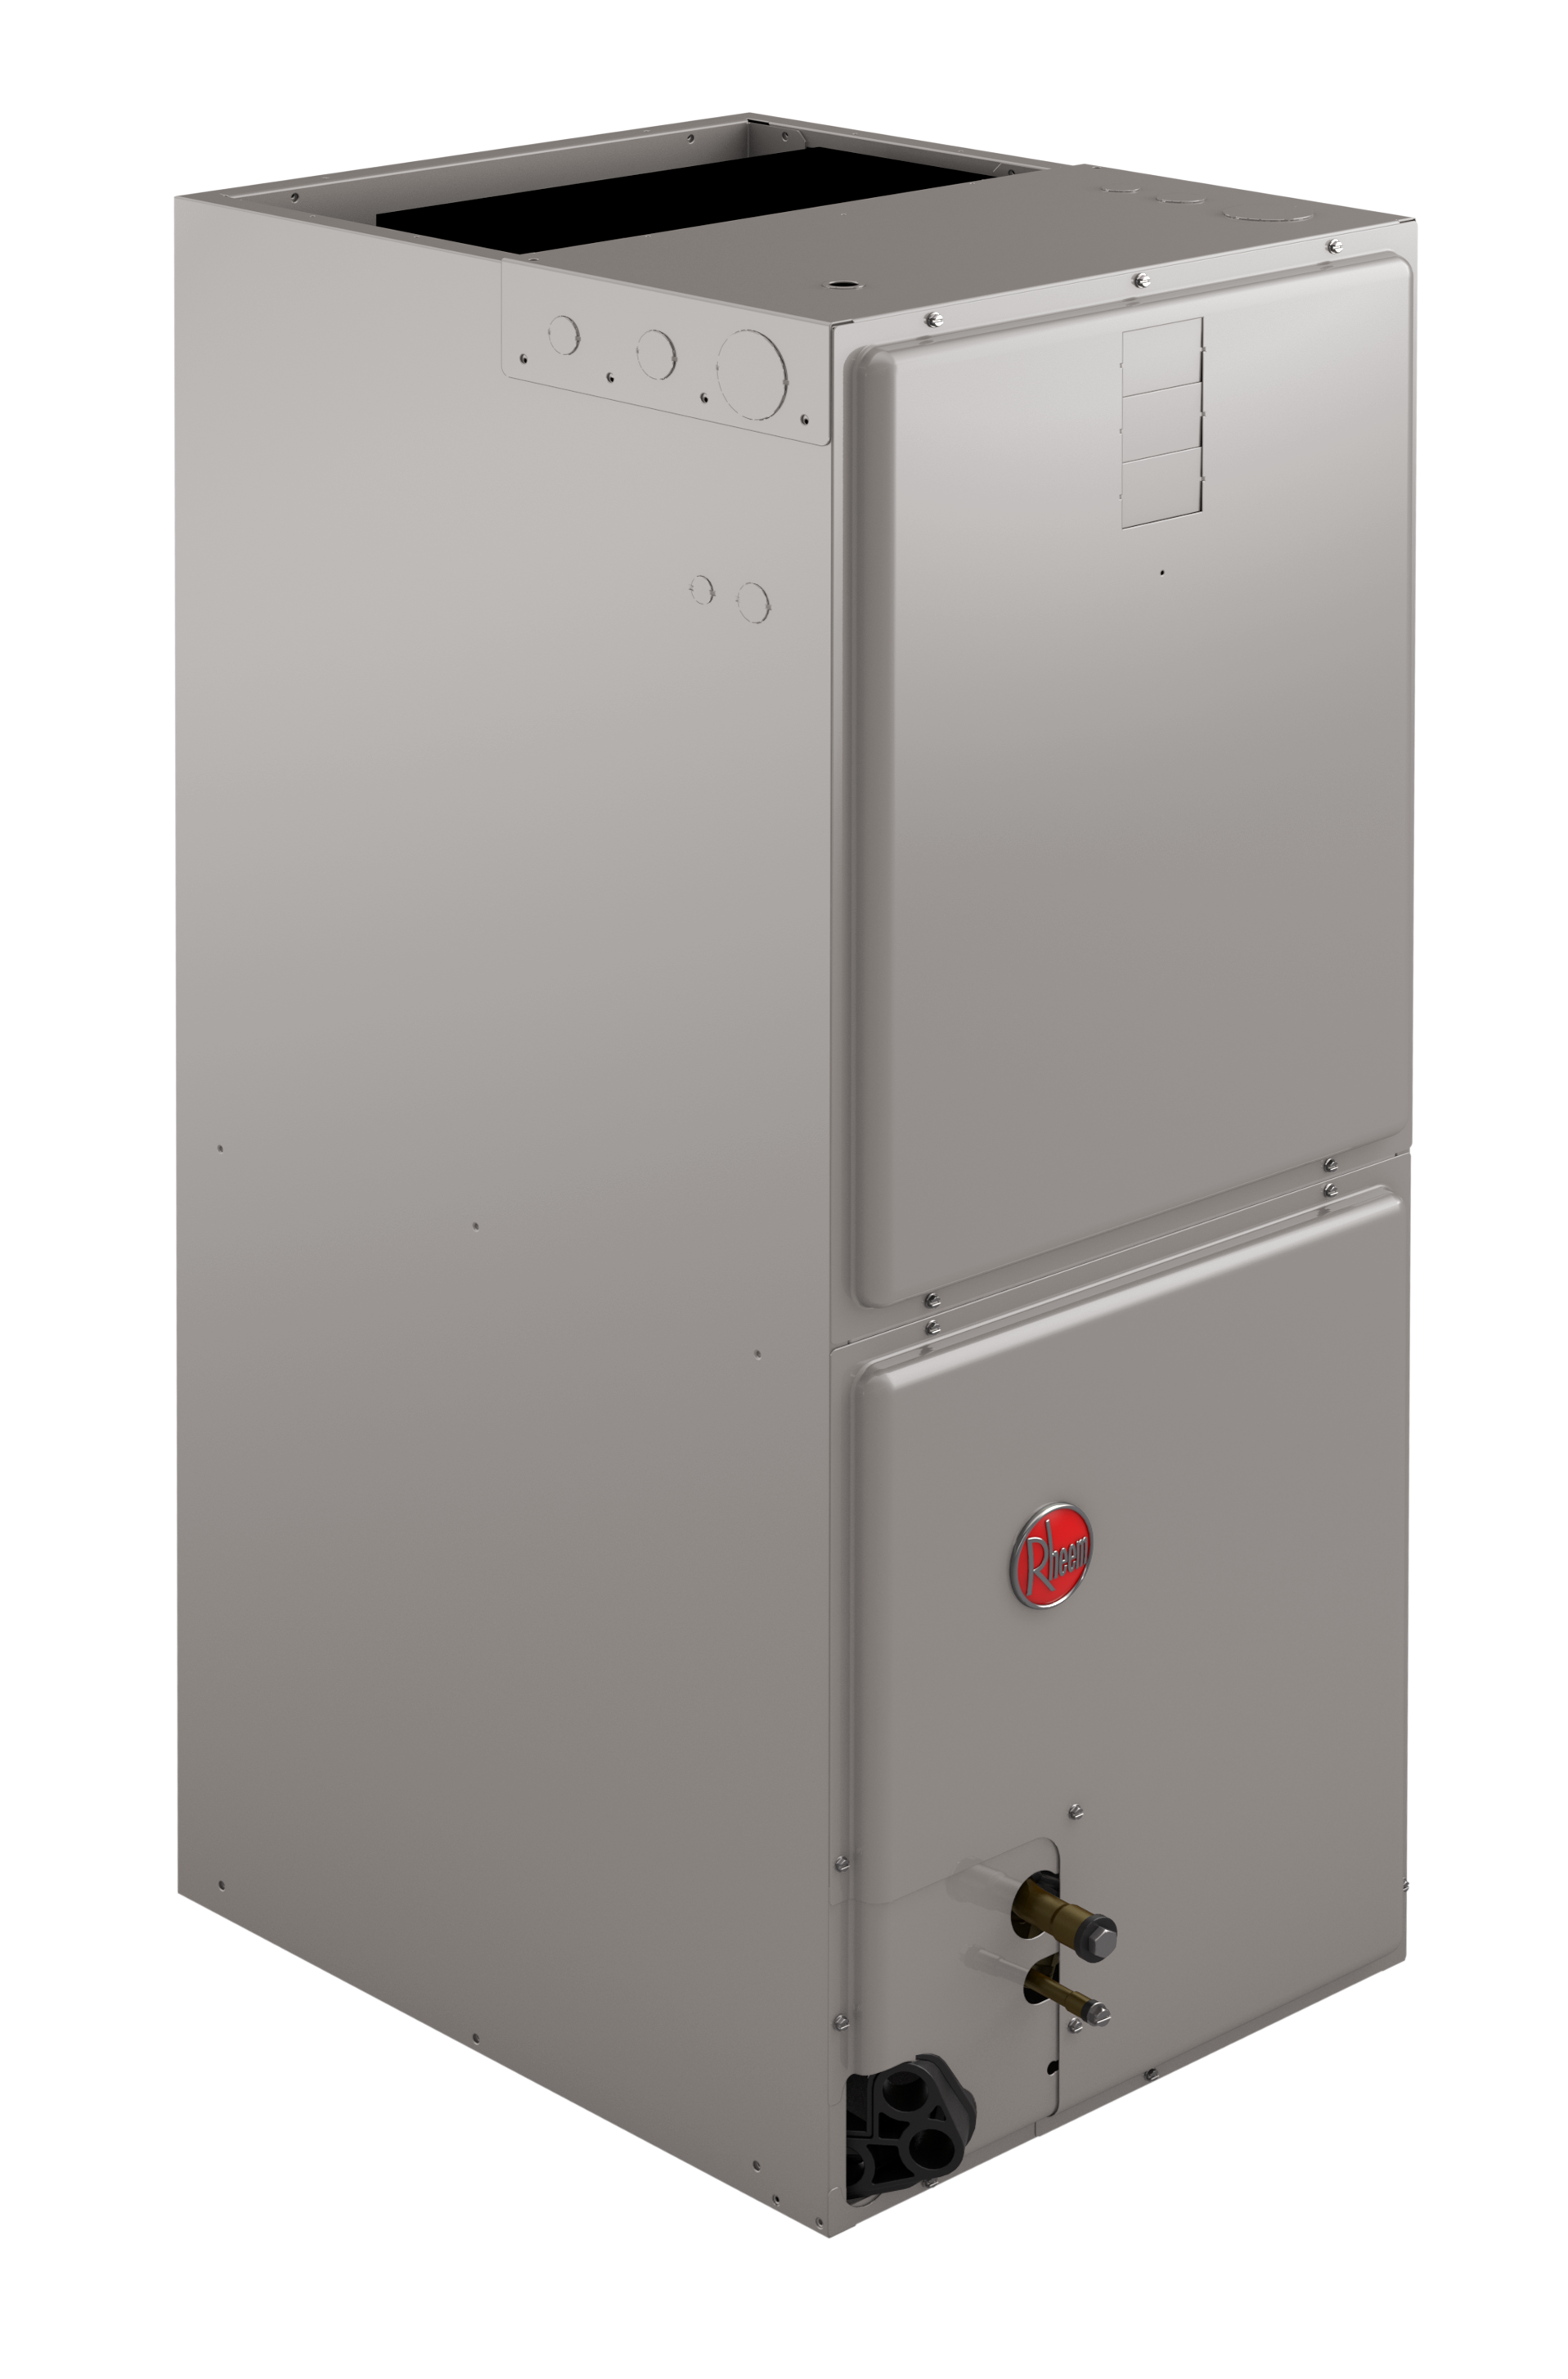 4.0 Ton Rheem RH1T High Efficiency Air Handler